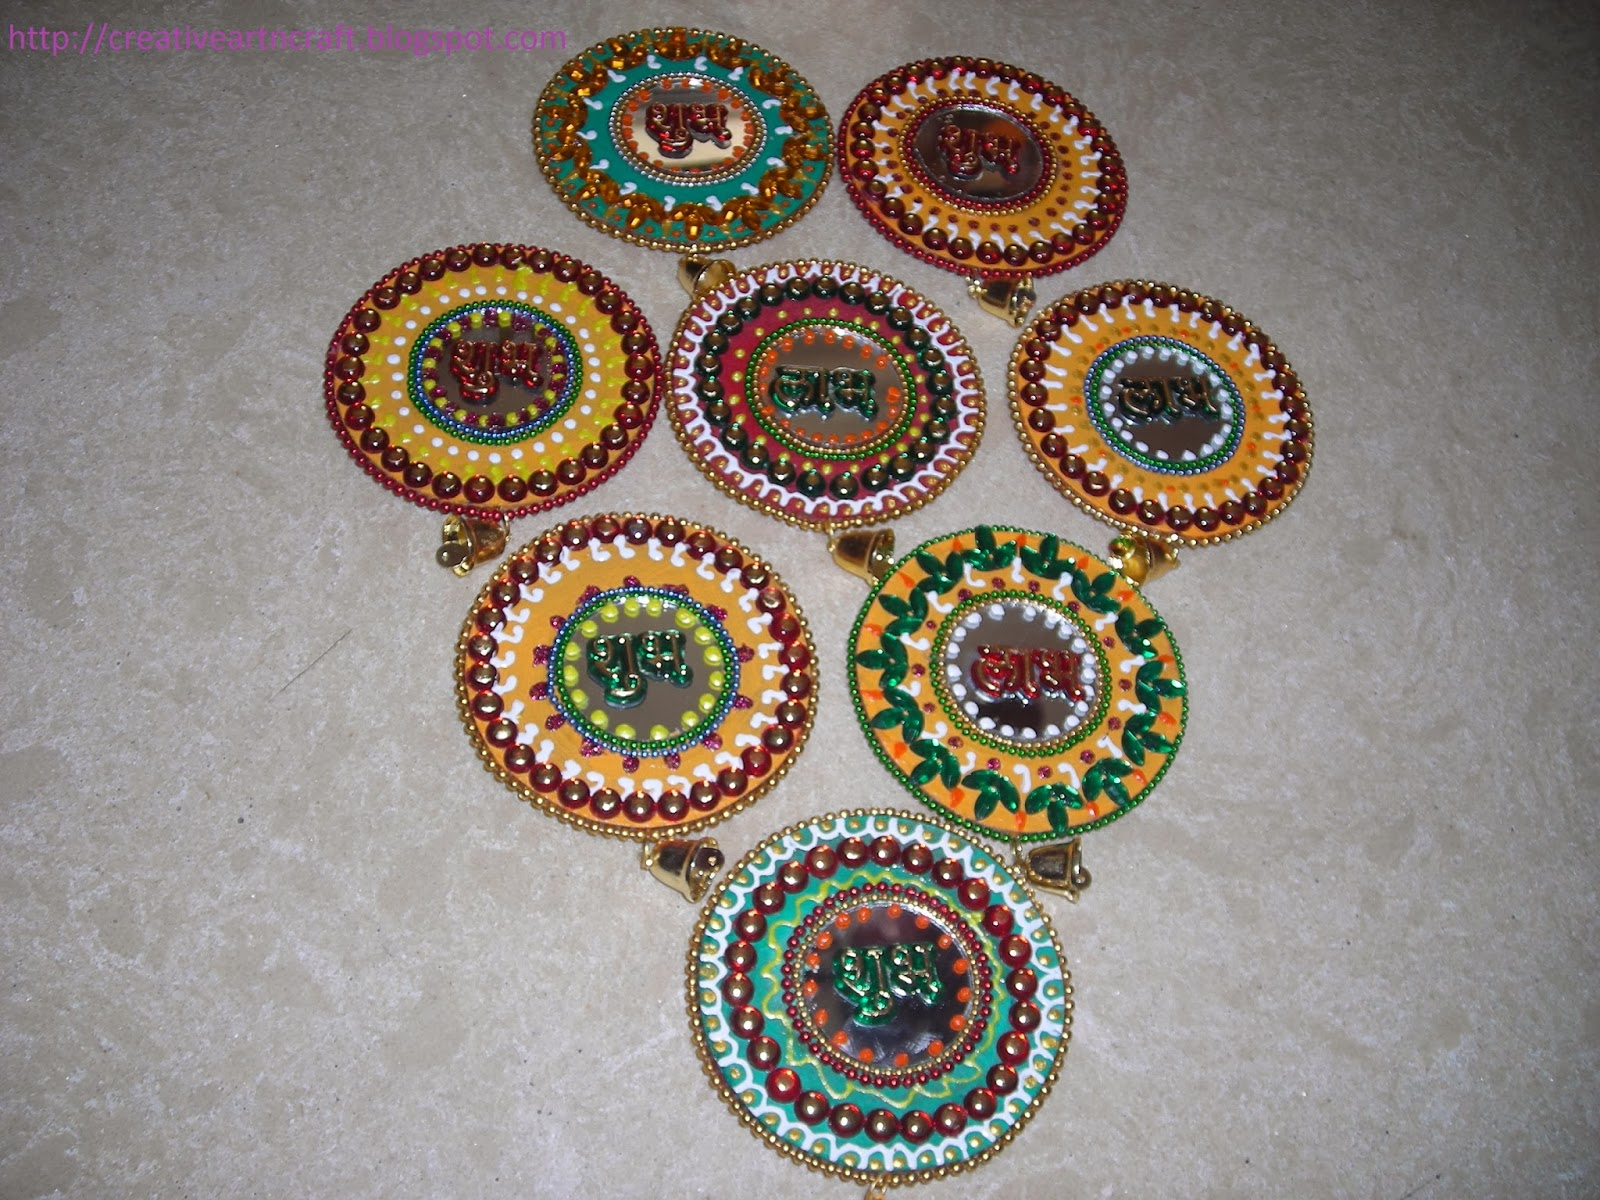 Diy cd wall hanging diwali decor pinterest - Designs in glasses for house decoration ...